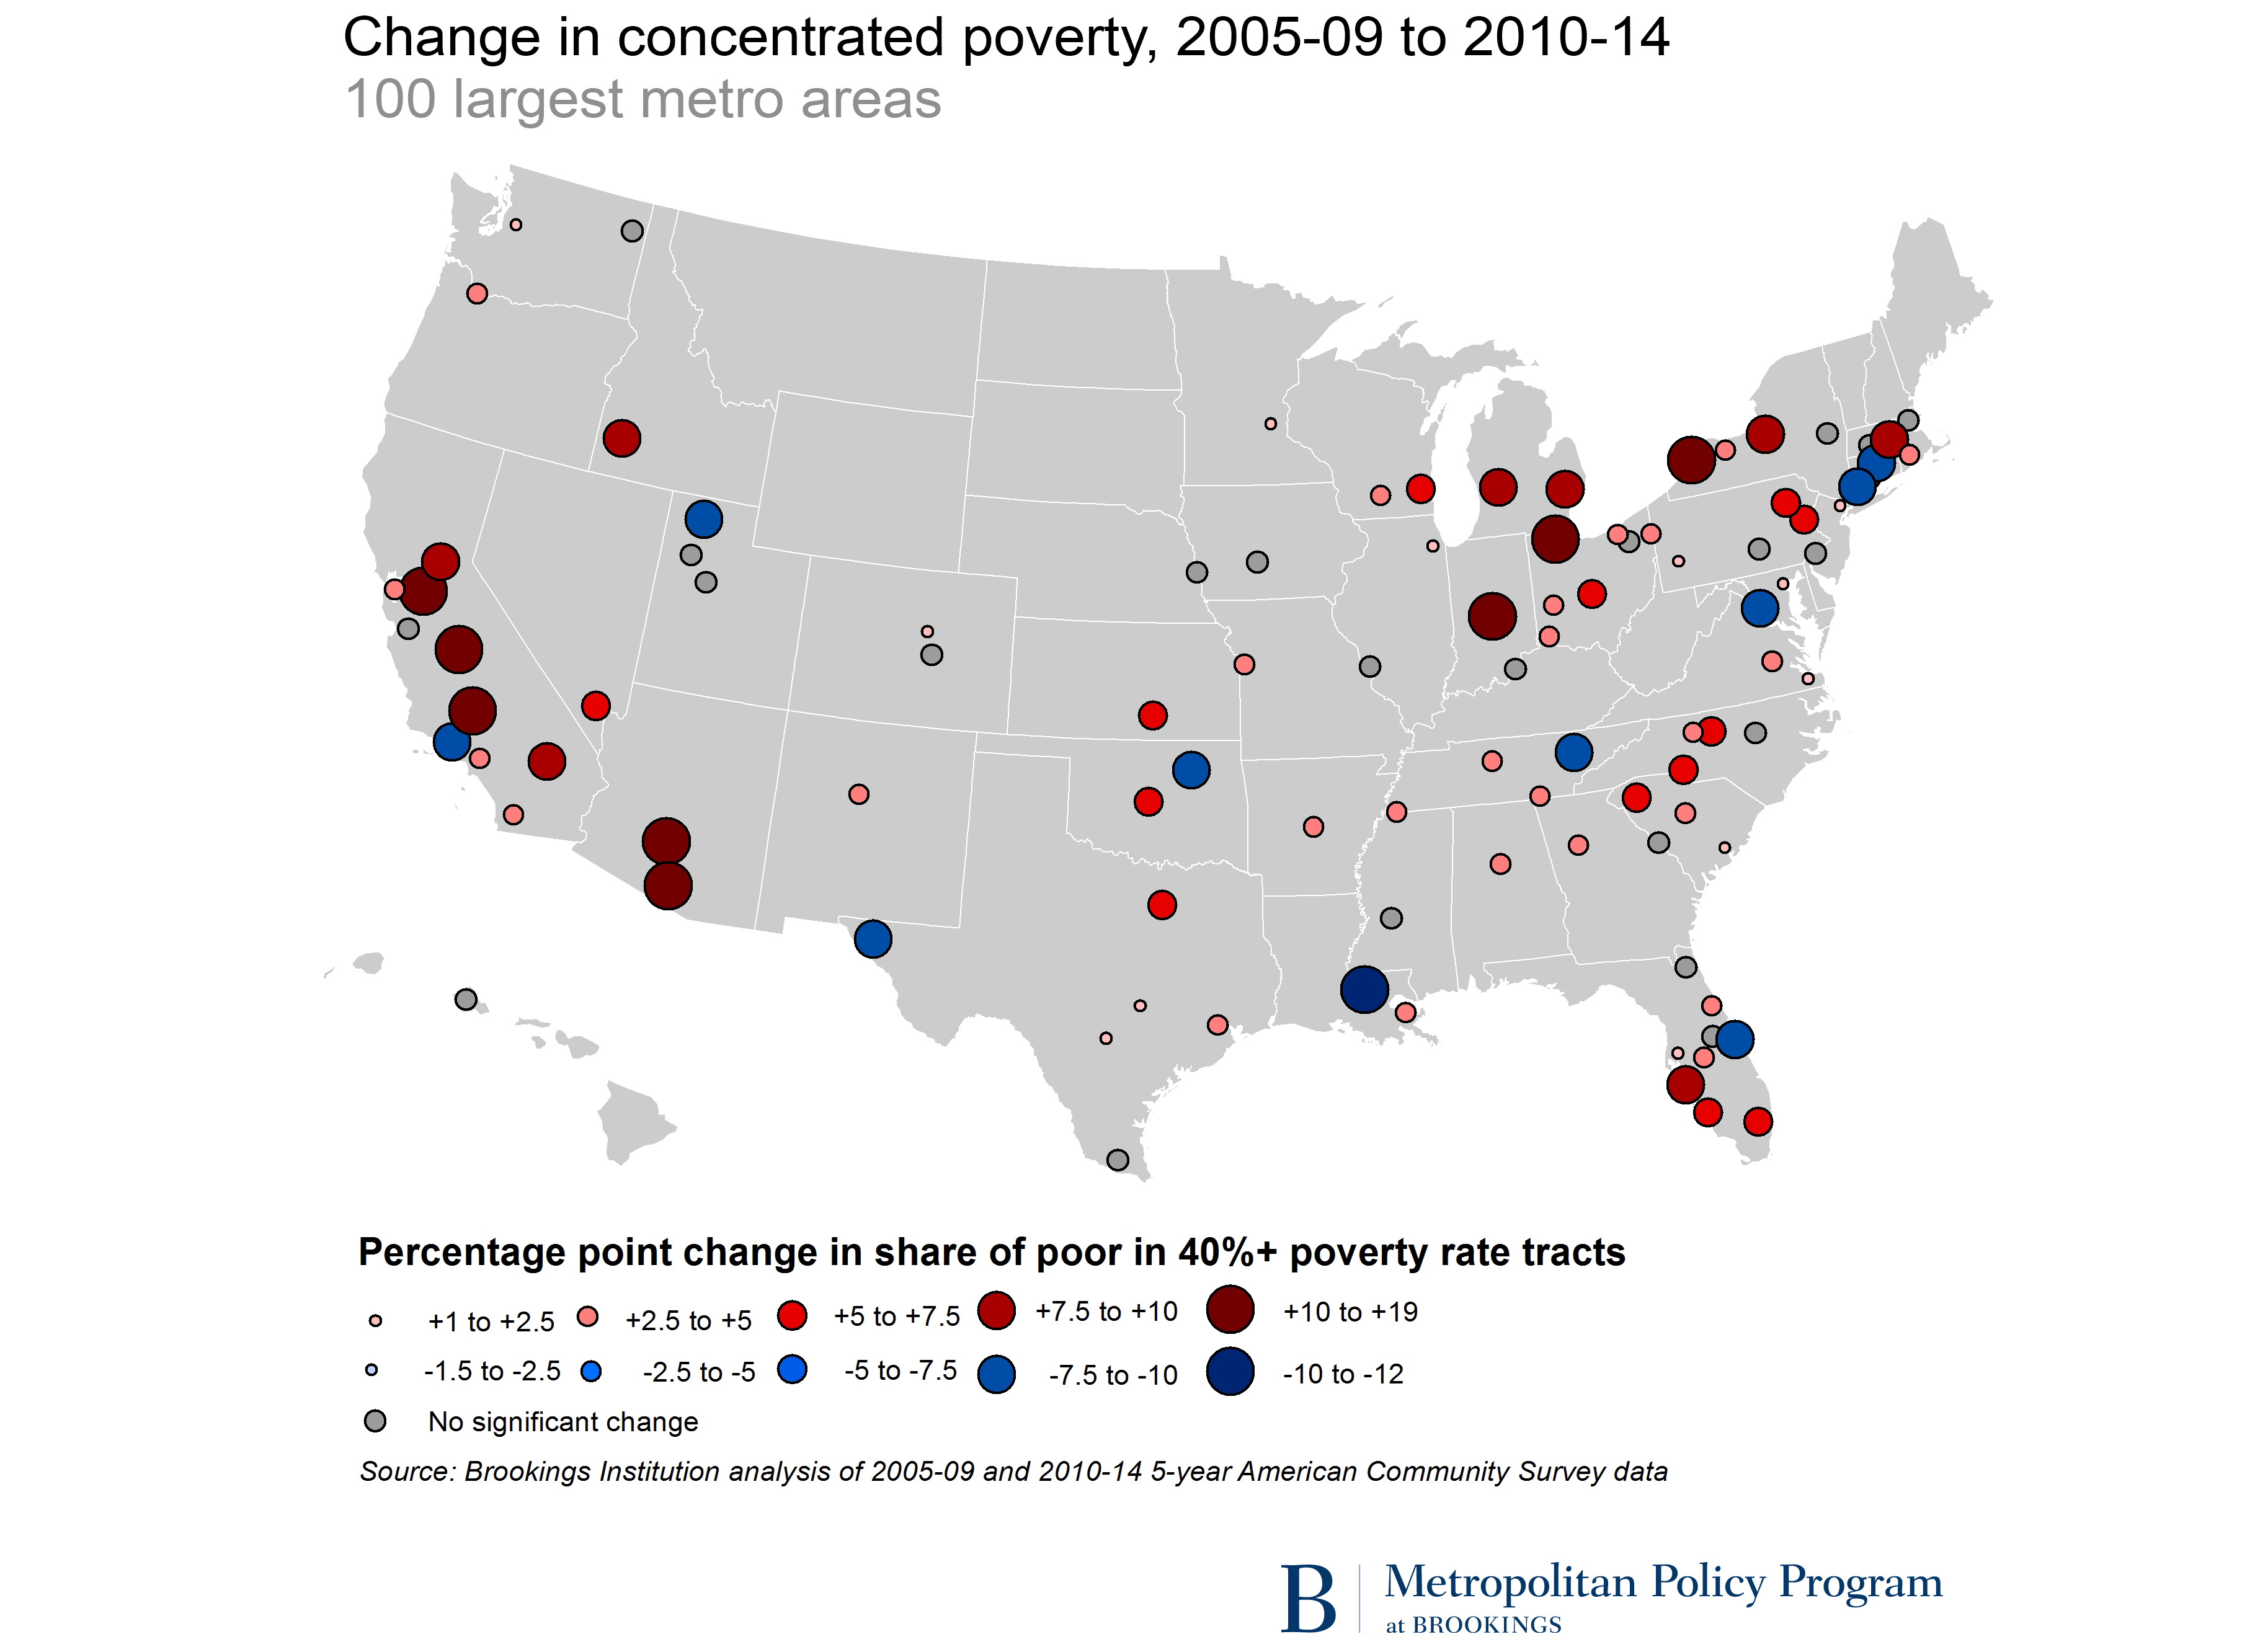 201014 concentrated poverty 100 metro map